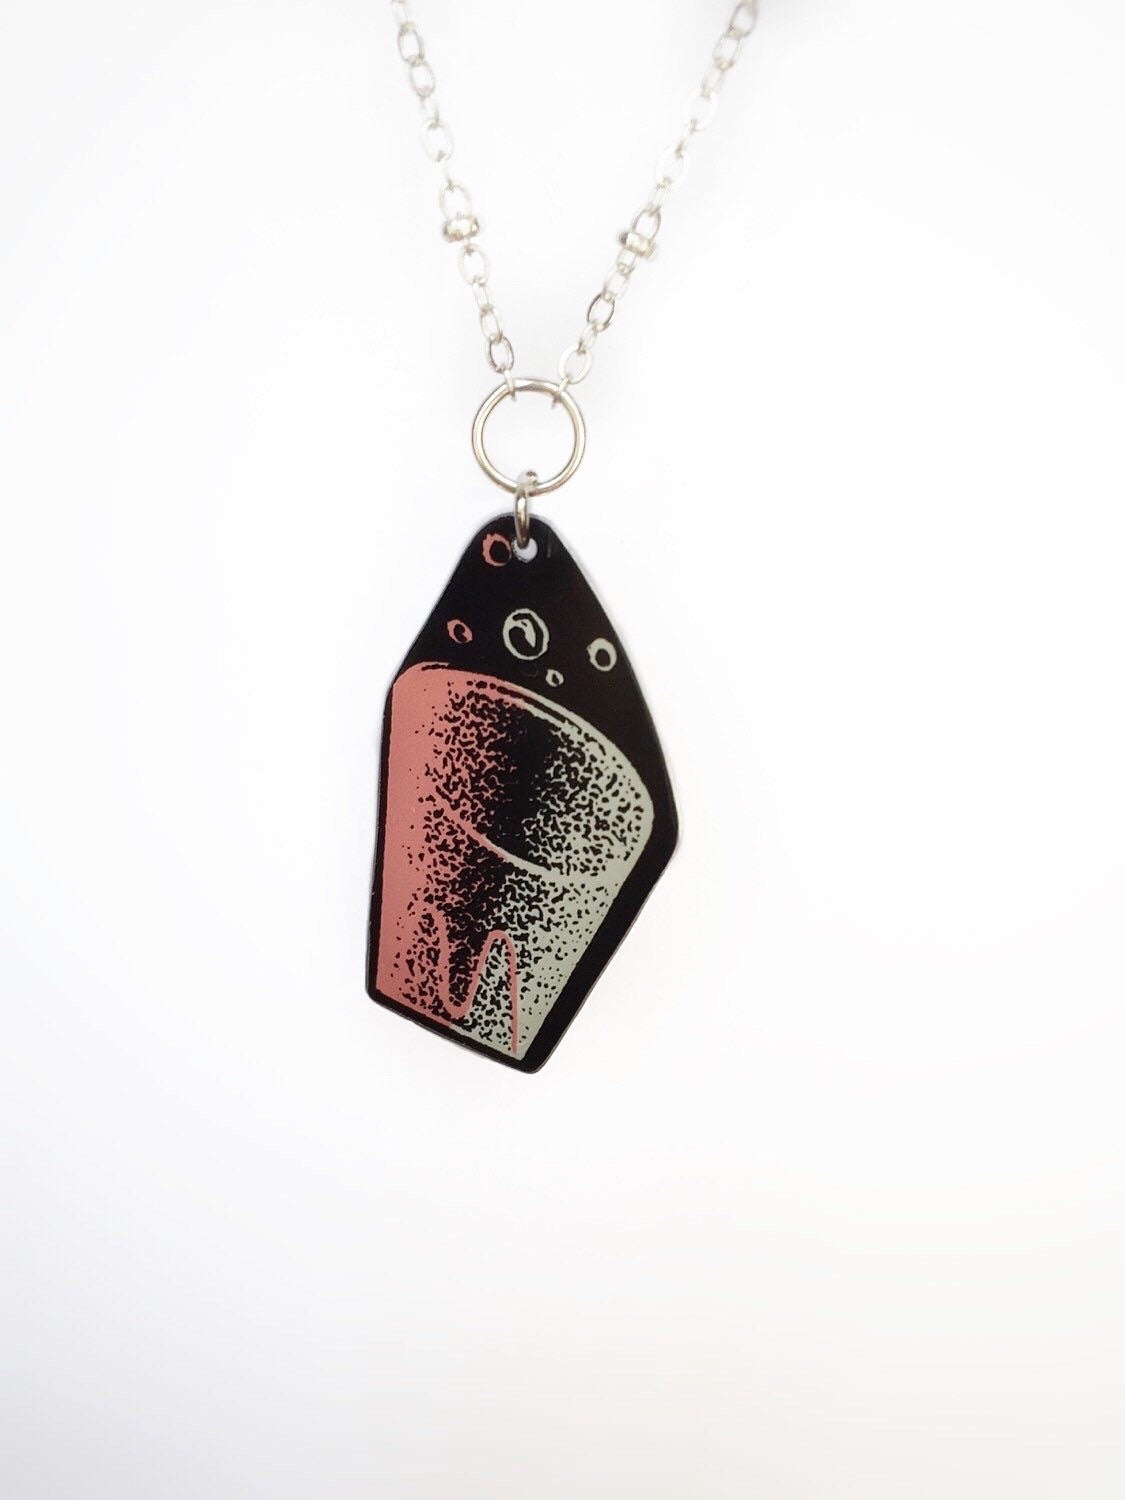 Recycled Tin Jewelry - Women's Vintage Shot Glass Necklace close up image